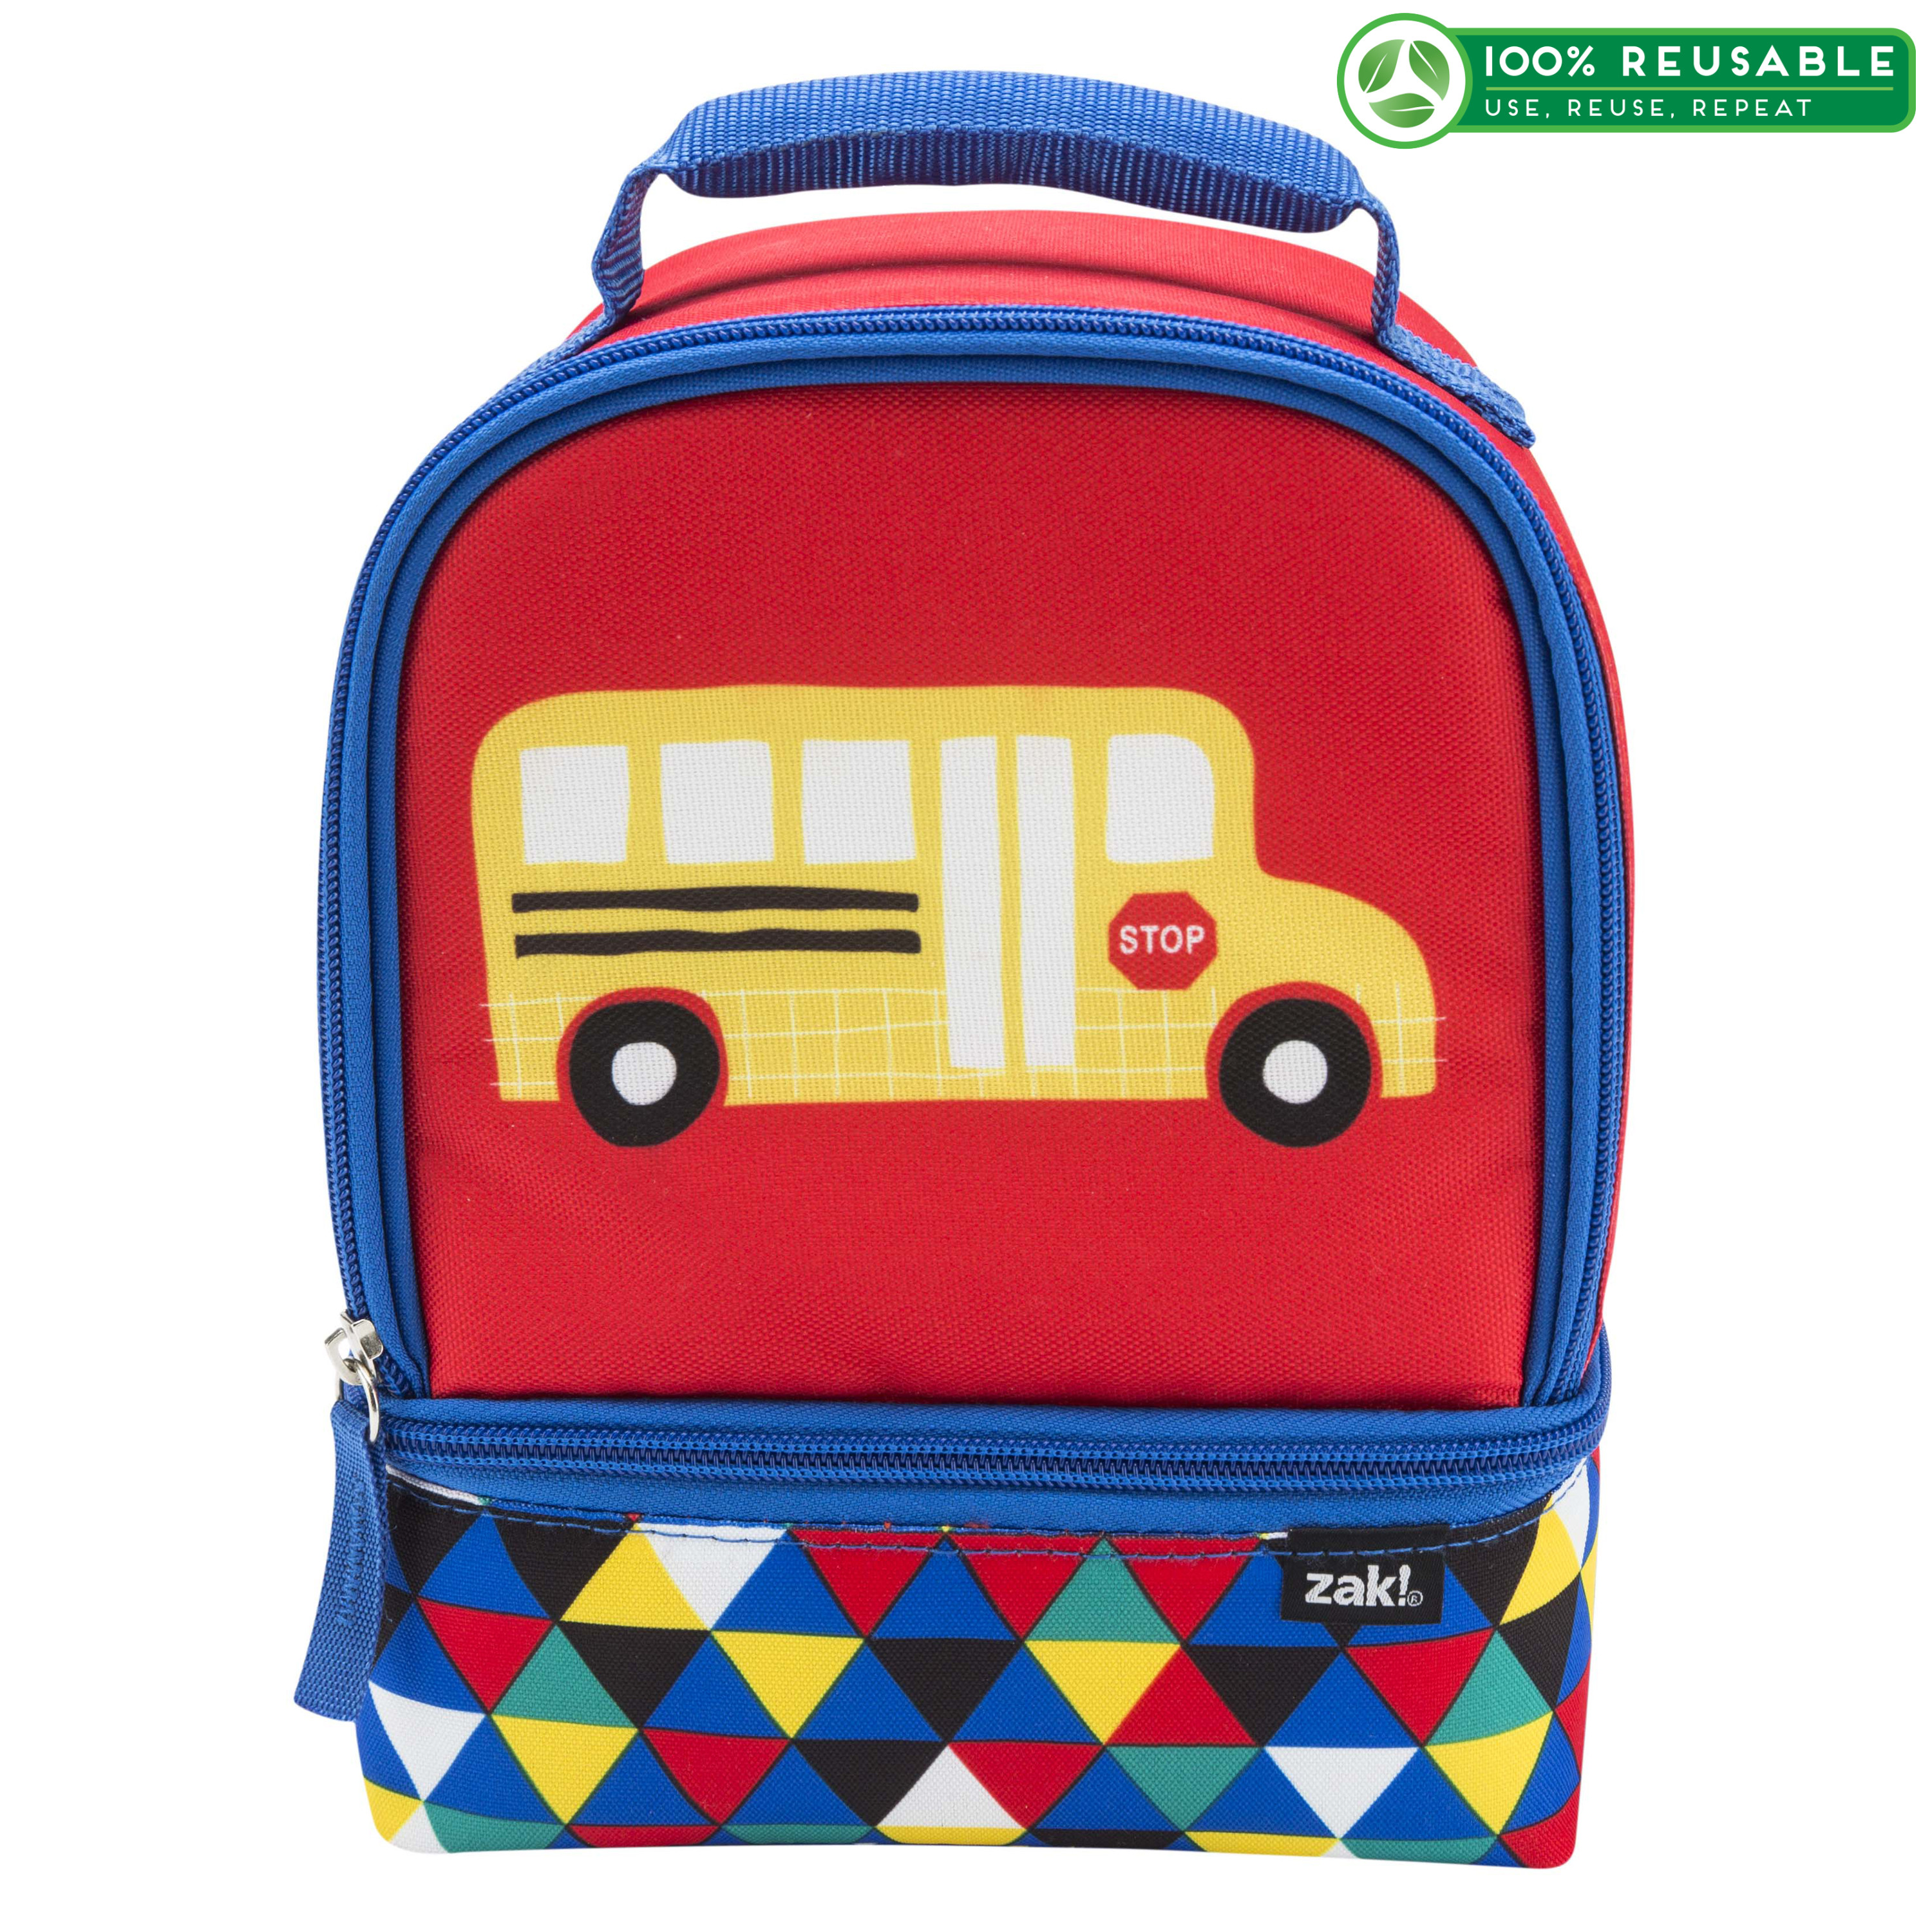 Grid Lock 2-compartment Reusable Insulated Lunch Bag, Buses slideshow image 1